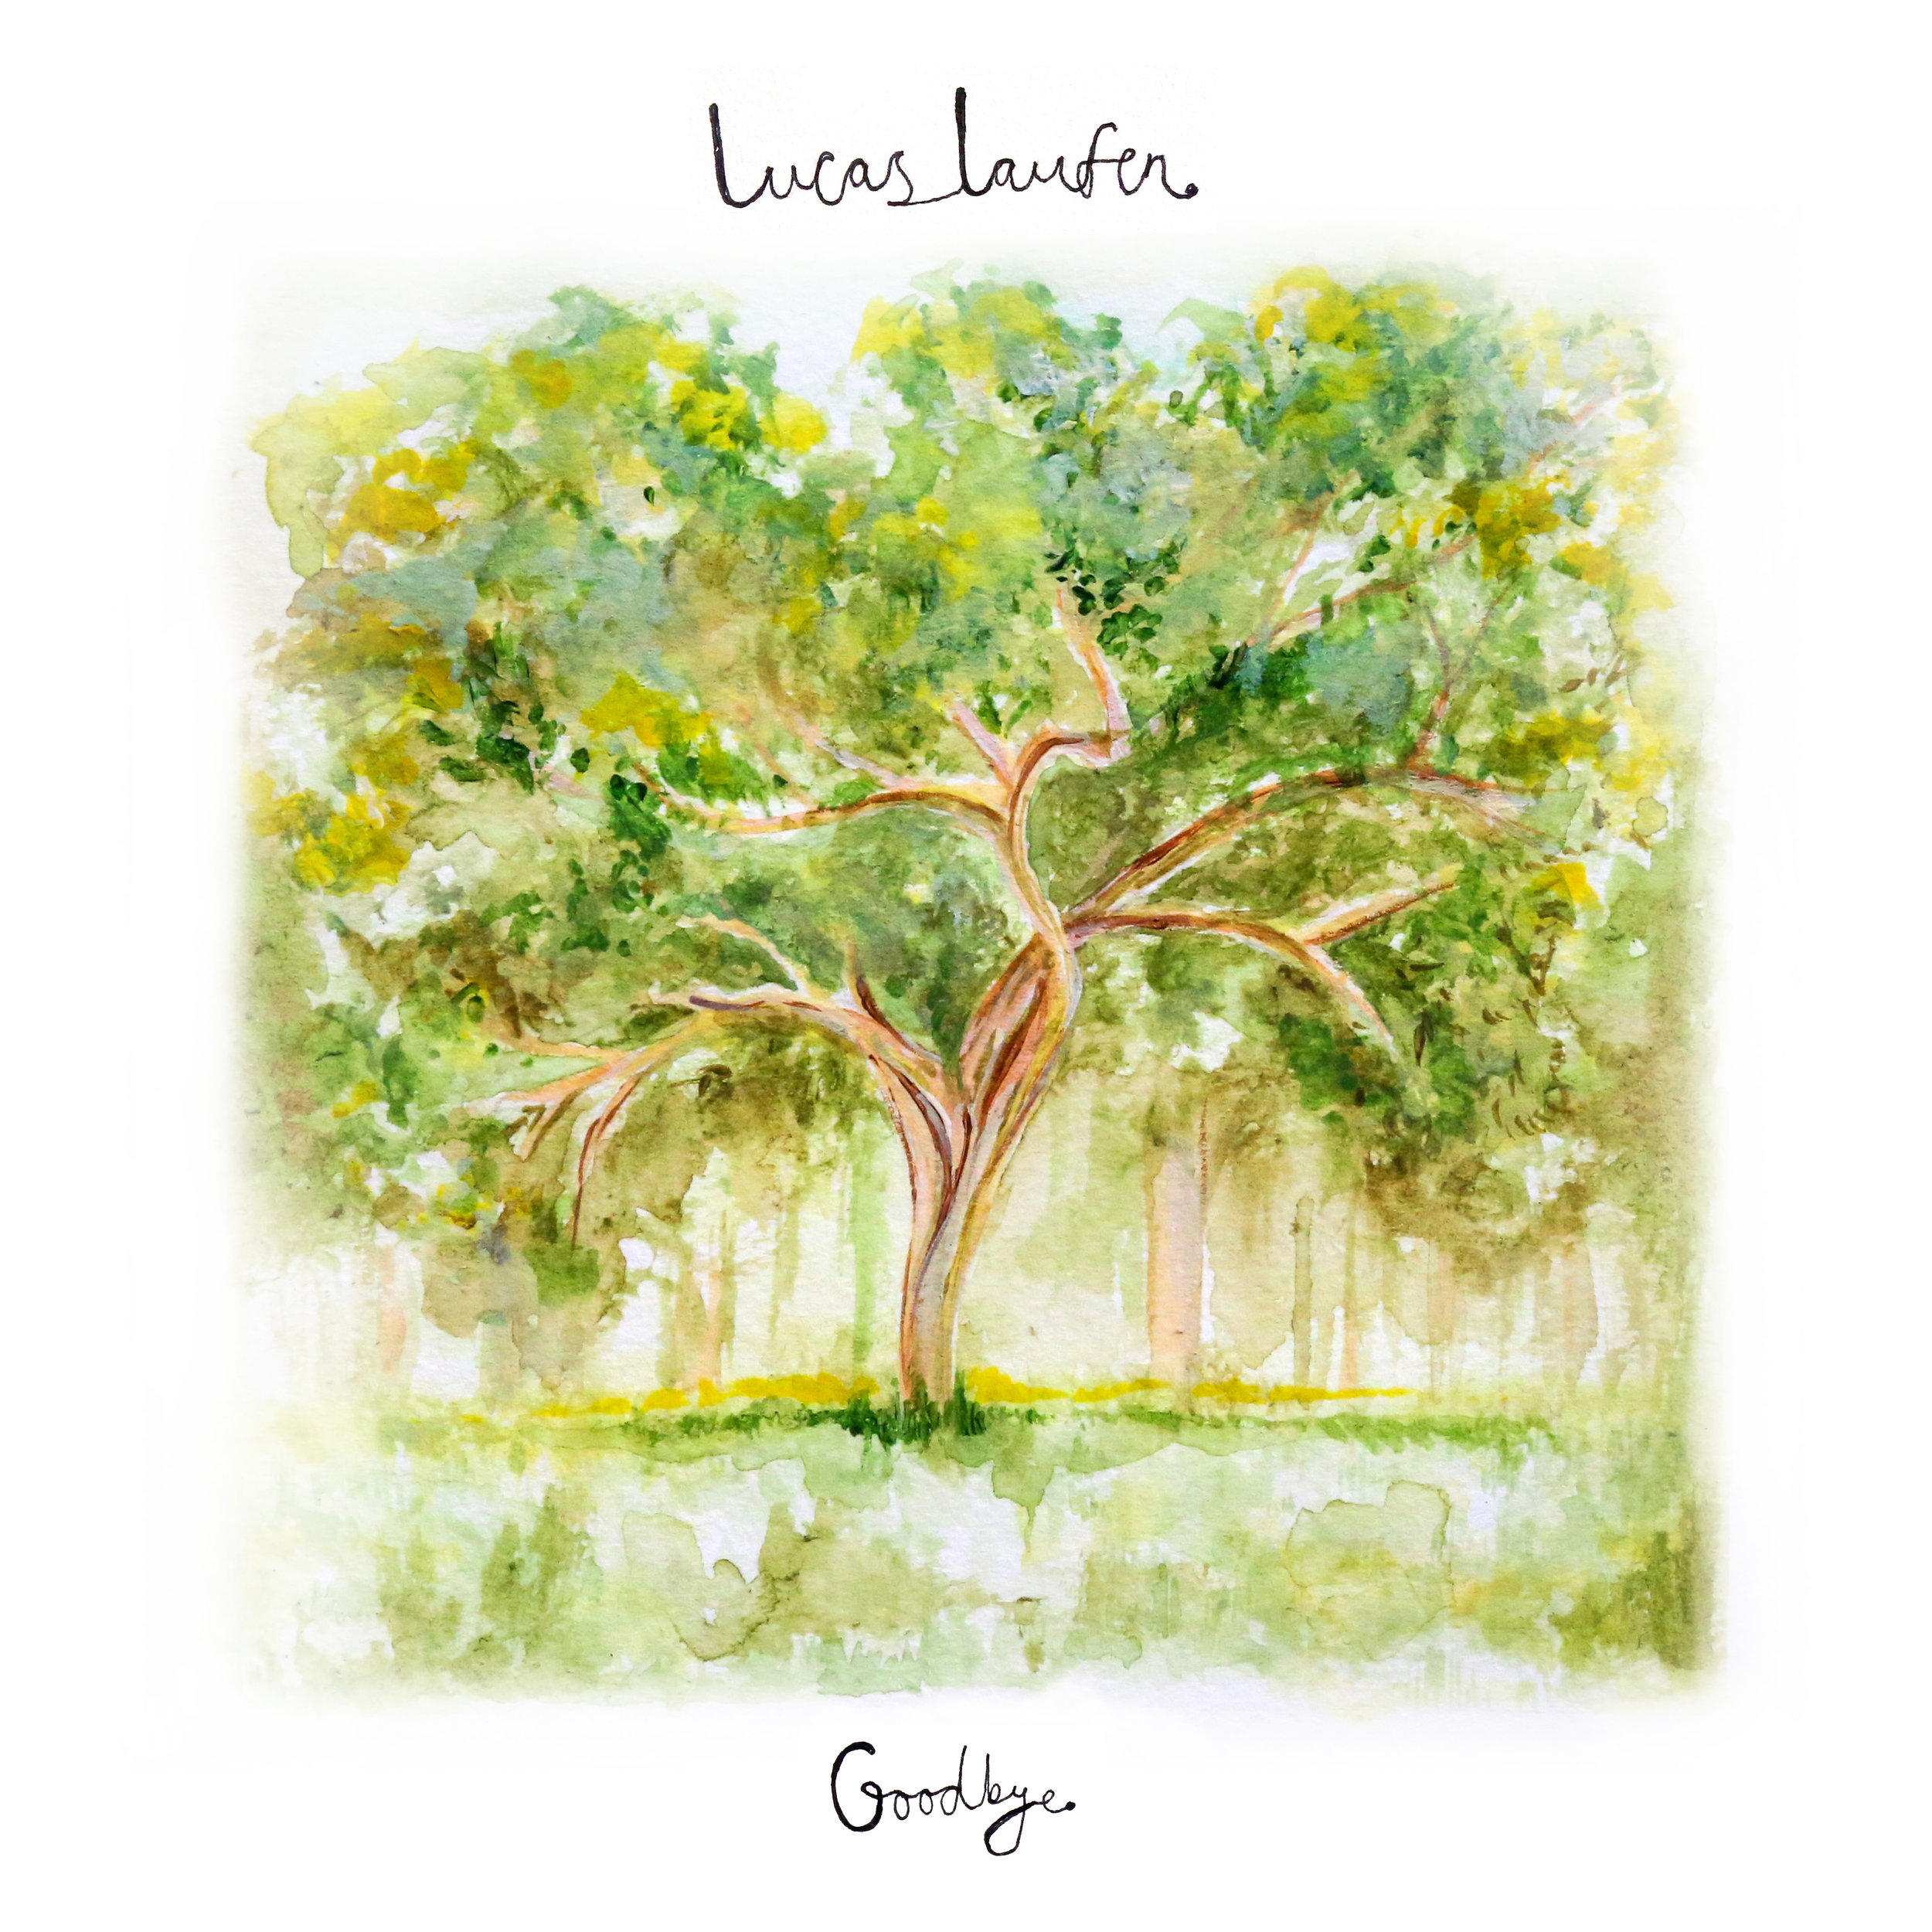 Lucas Laufen: Goodbye EP (CD) - CD in beautiful, glossy 4p DigiPak.BUY NOW